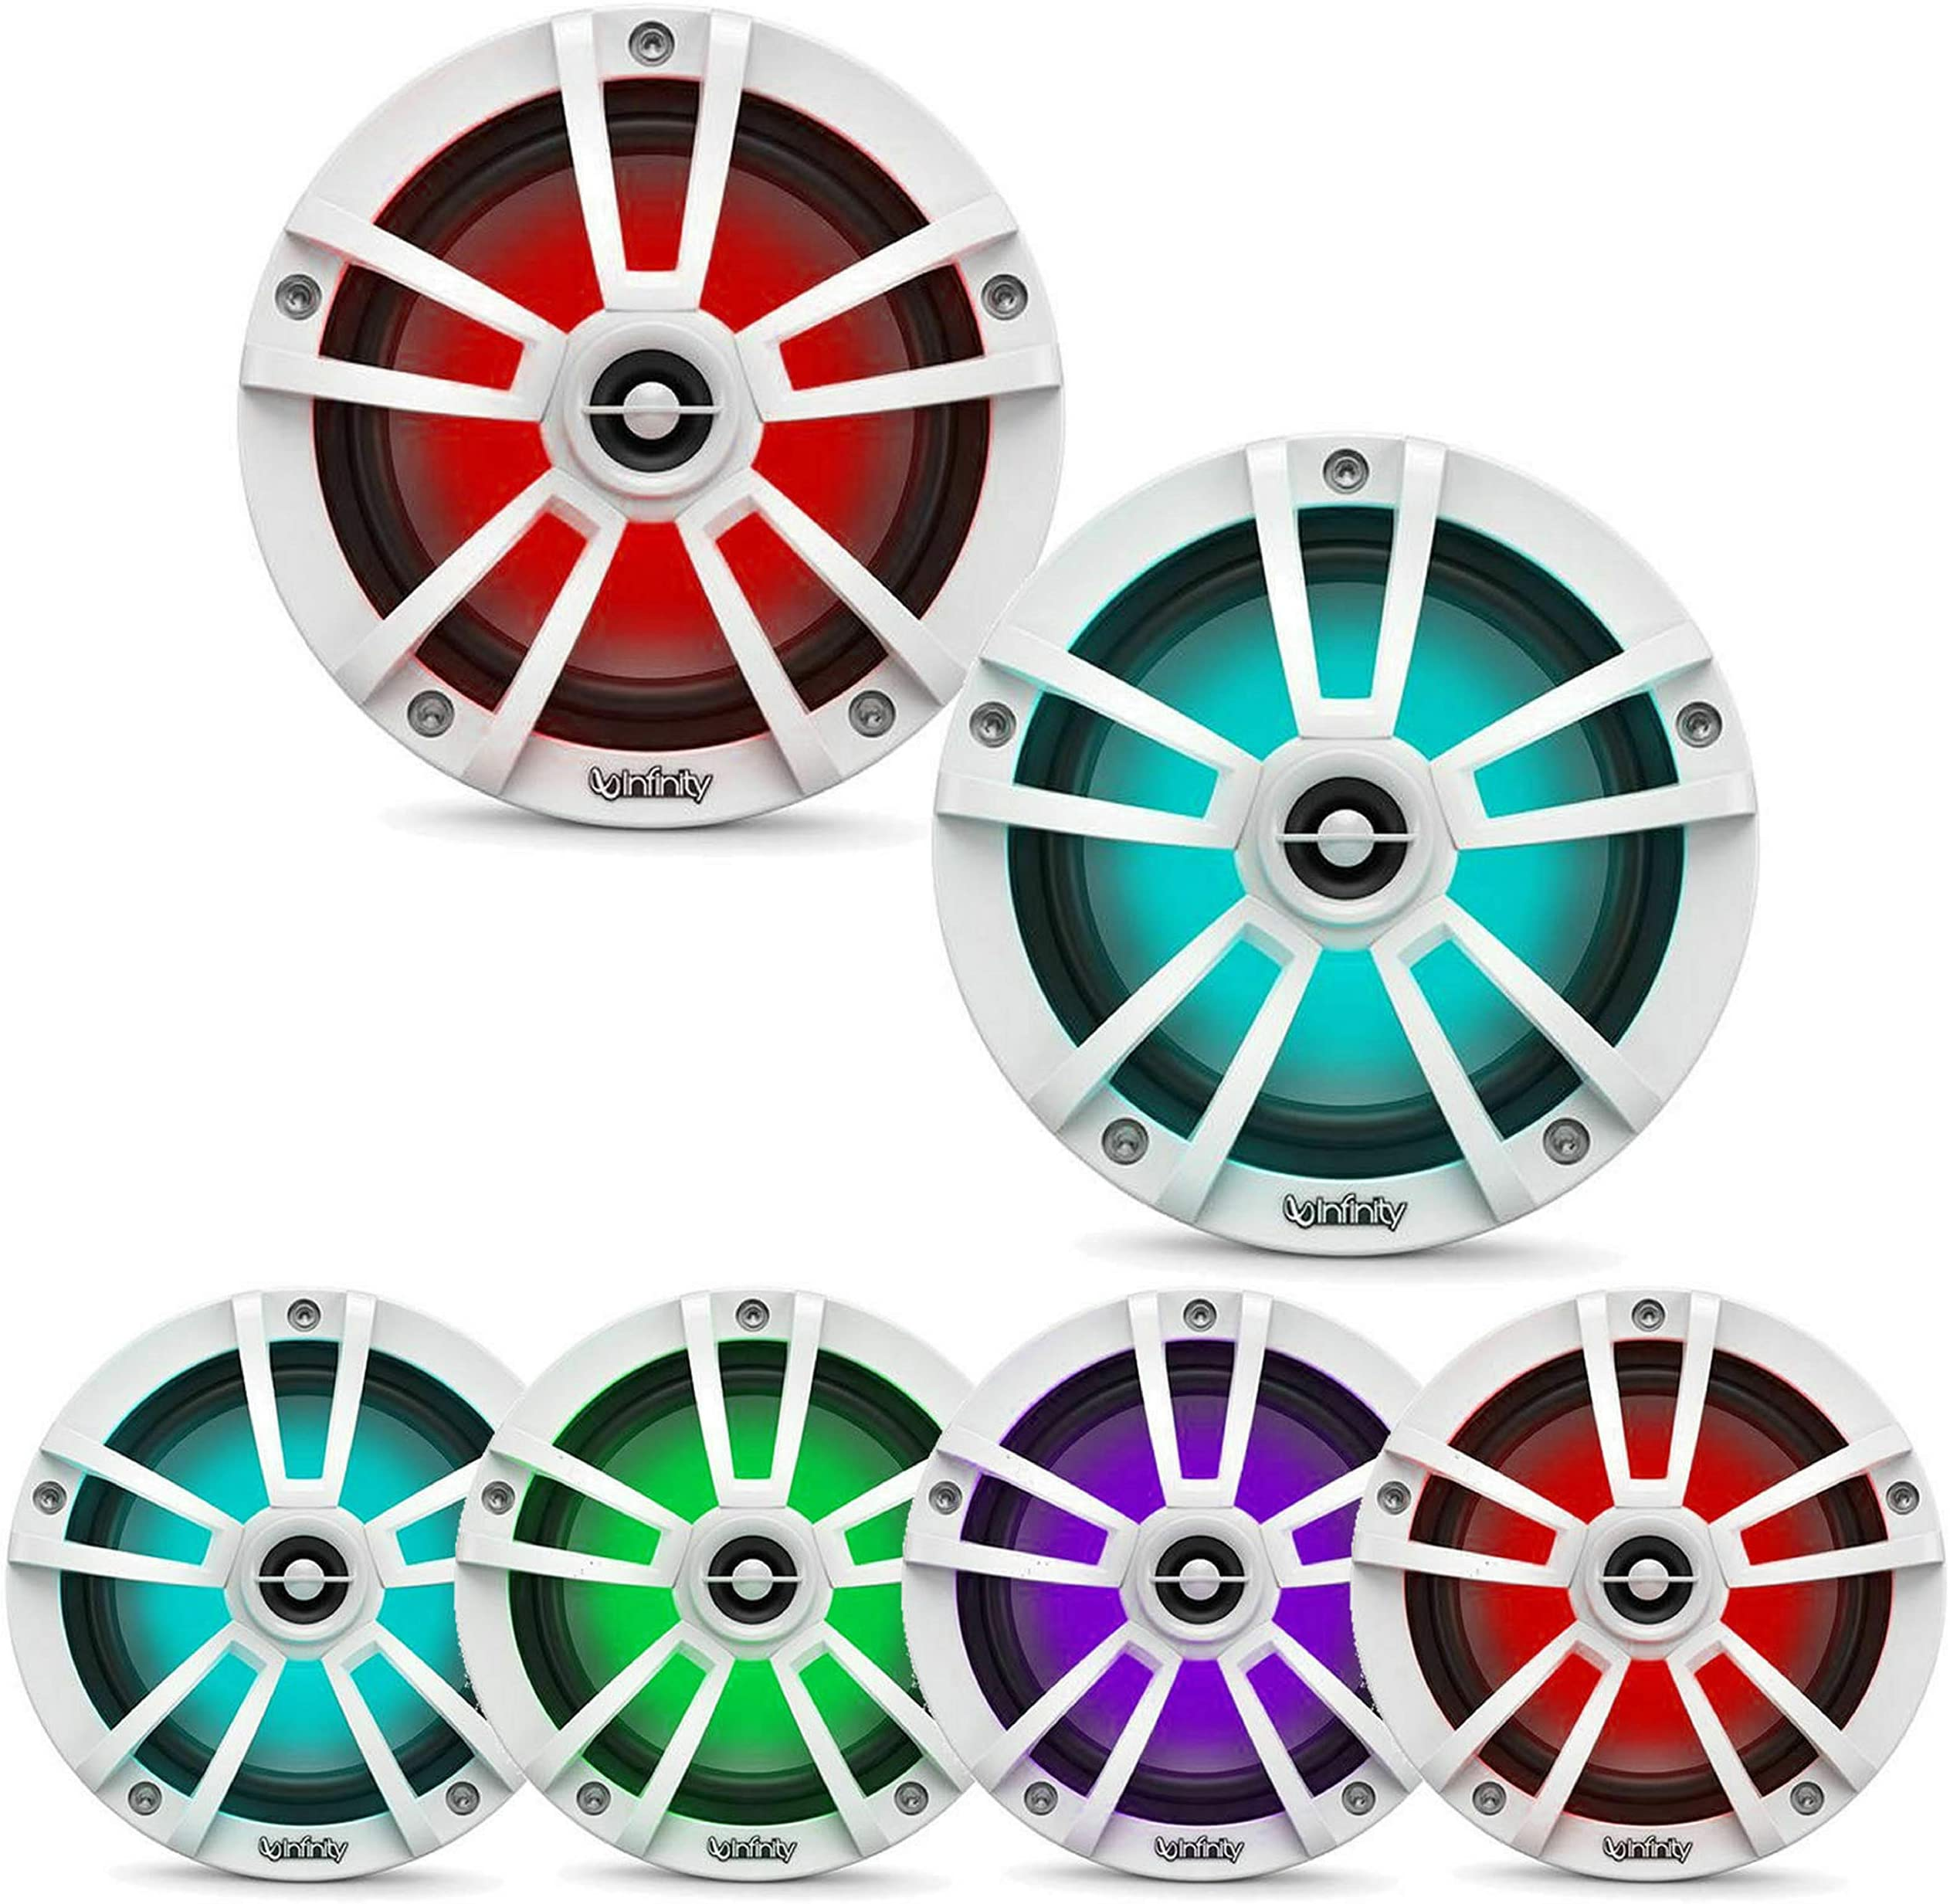 "Infinity Mobile Marine Performance Series 6.5"" 2 way speaker with RGB lighting - White"